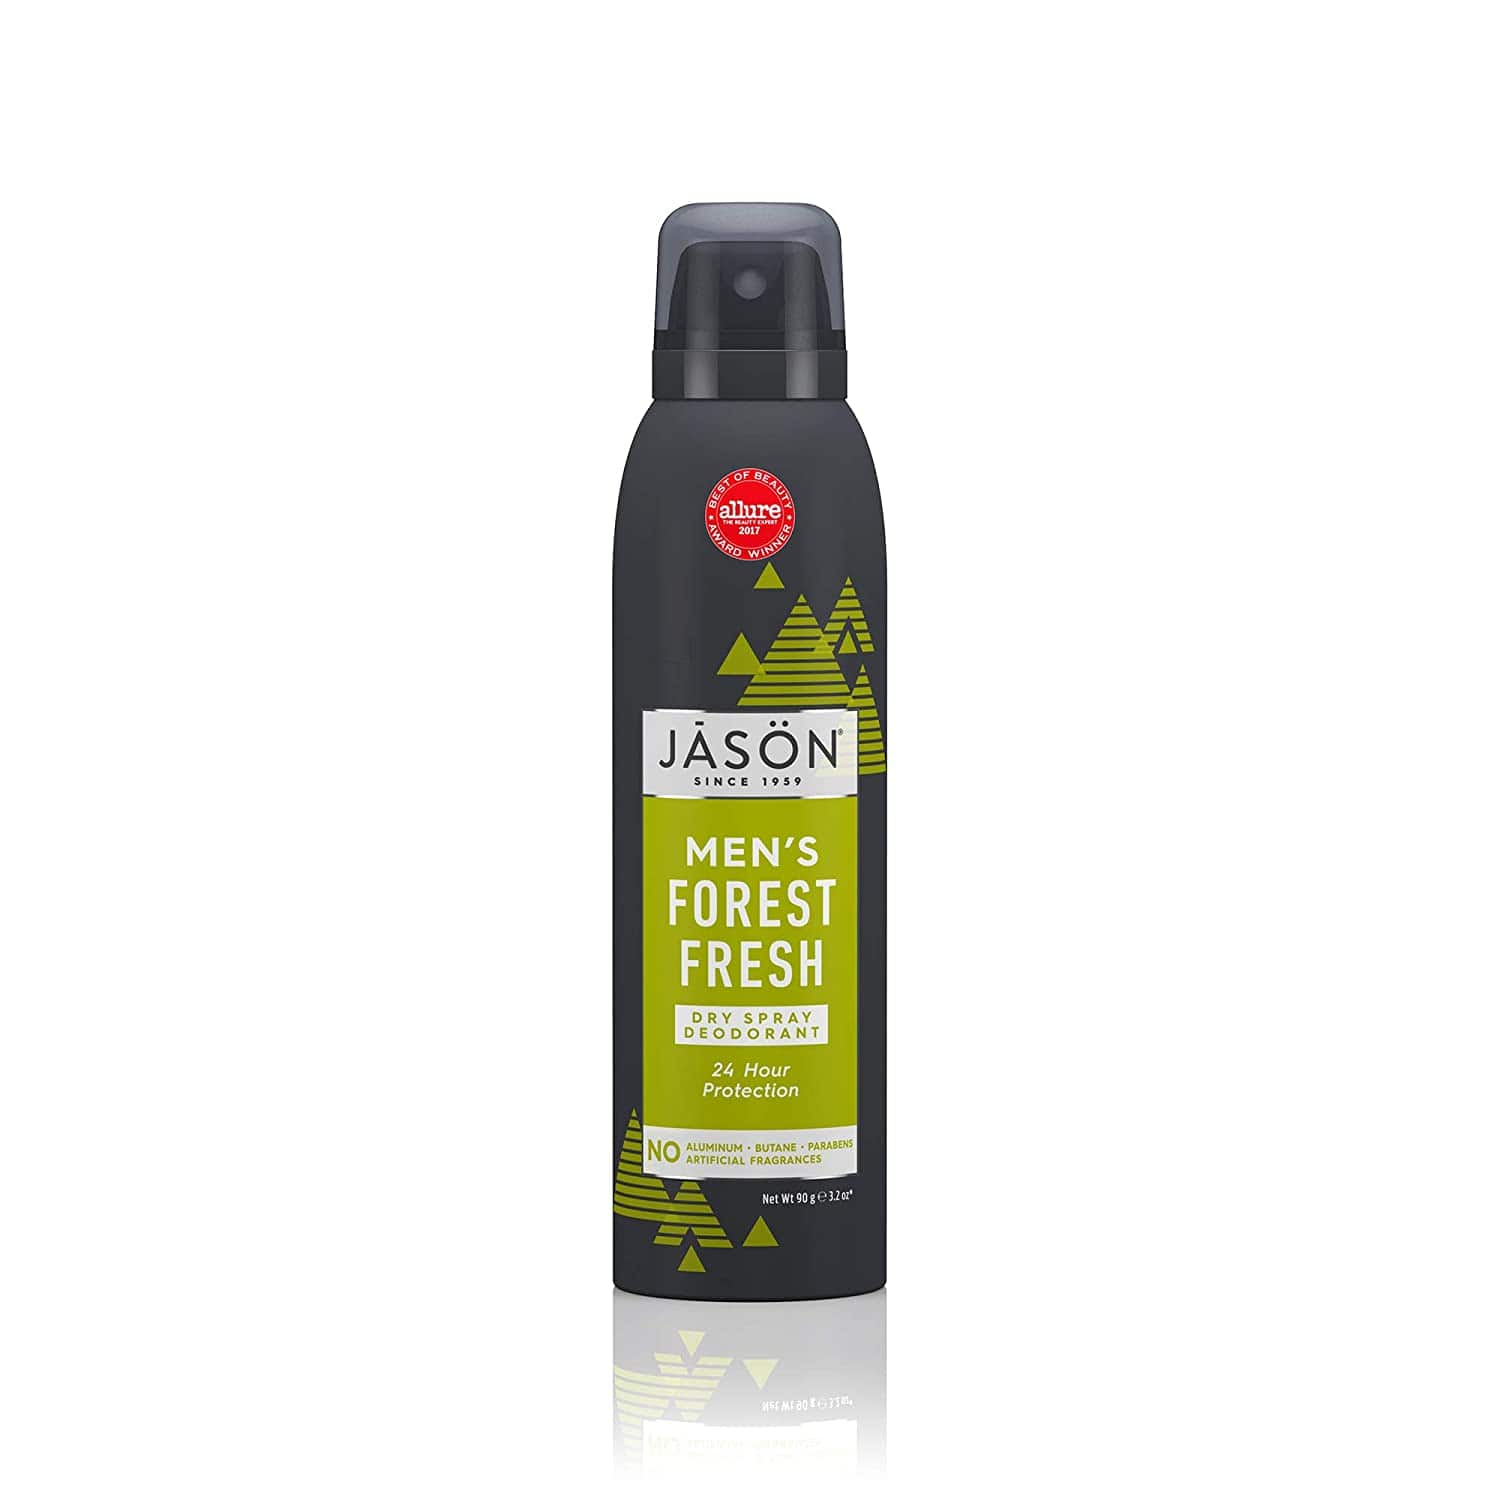 3.2-Oz Jason Men's Dry Spray Deodorant (Forest Fresh) $2.90 w/ S&S + Free S/H w/ Prime or $25+